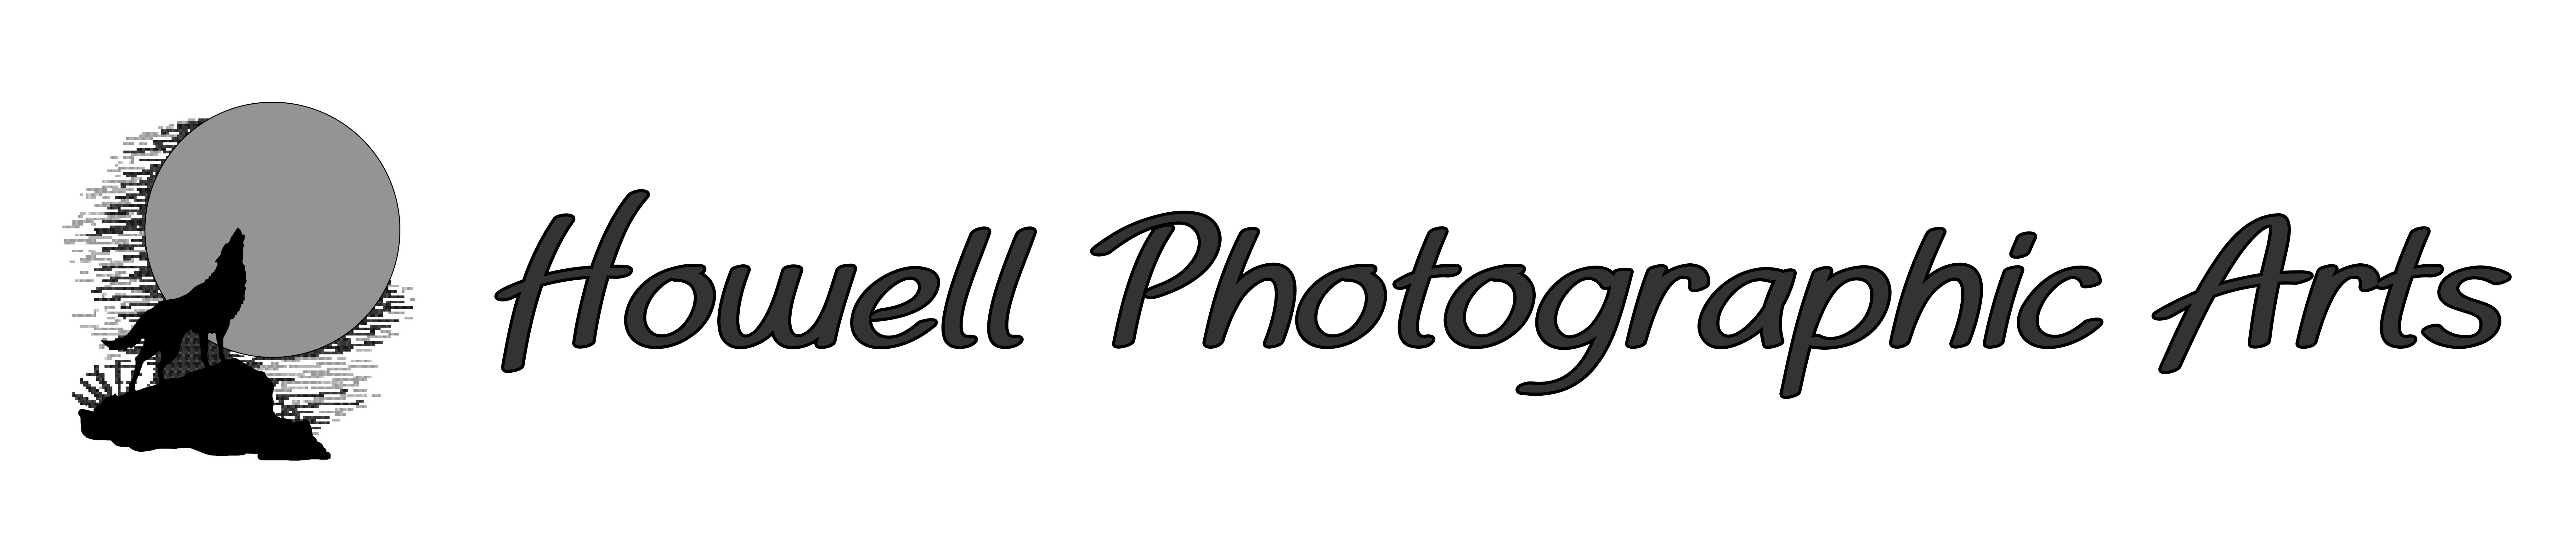 Howell Photographic Arts